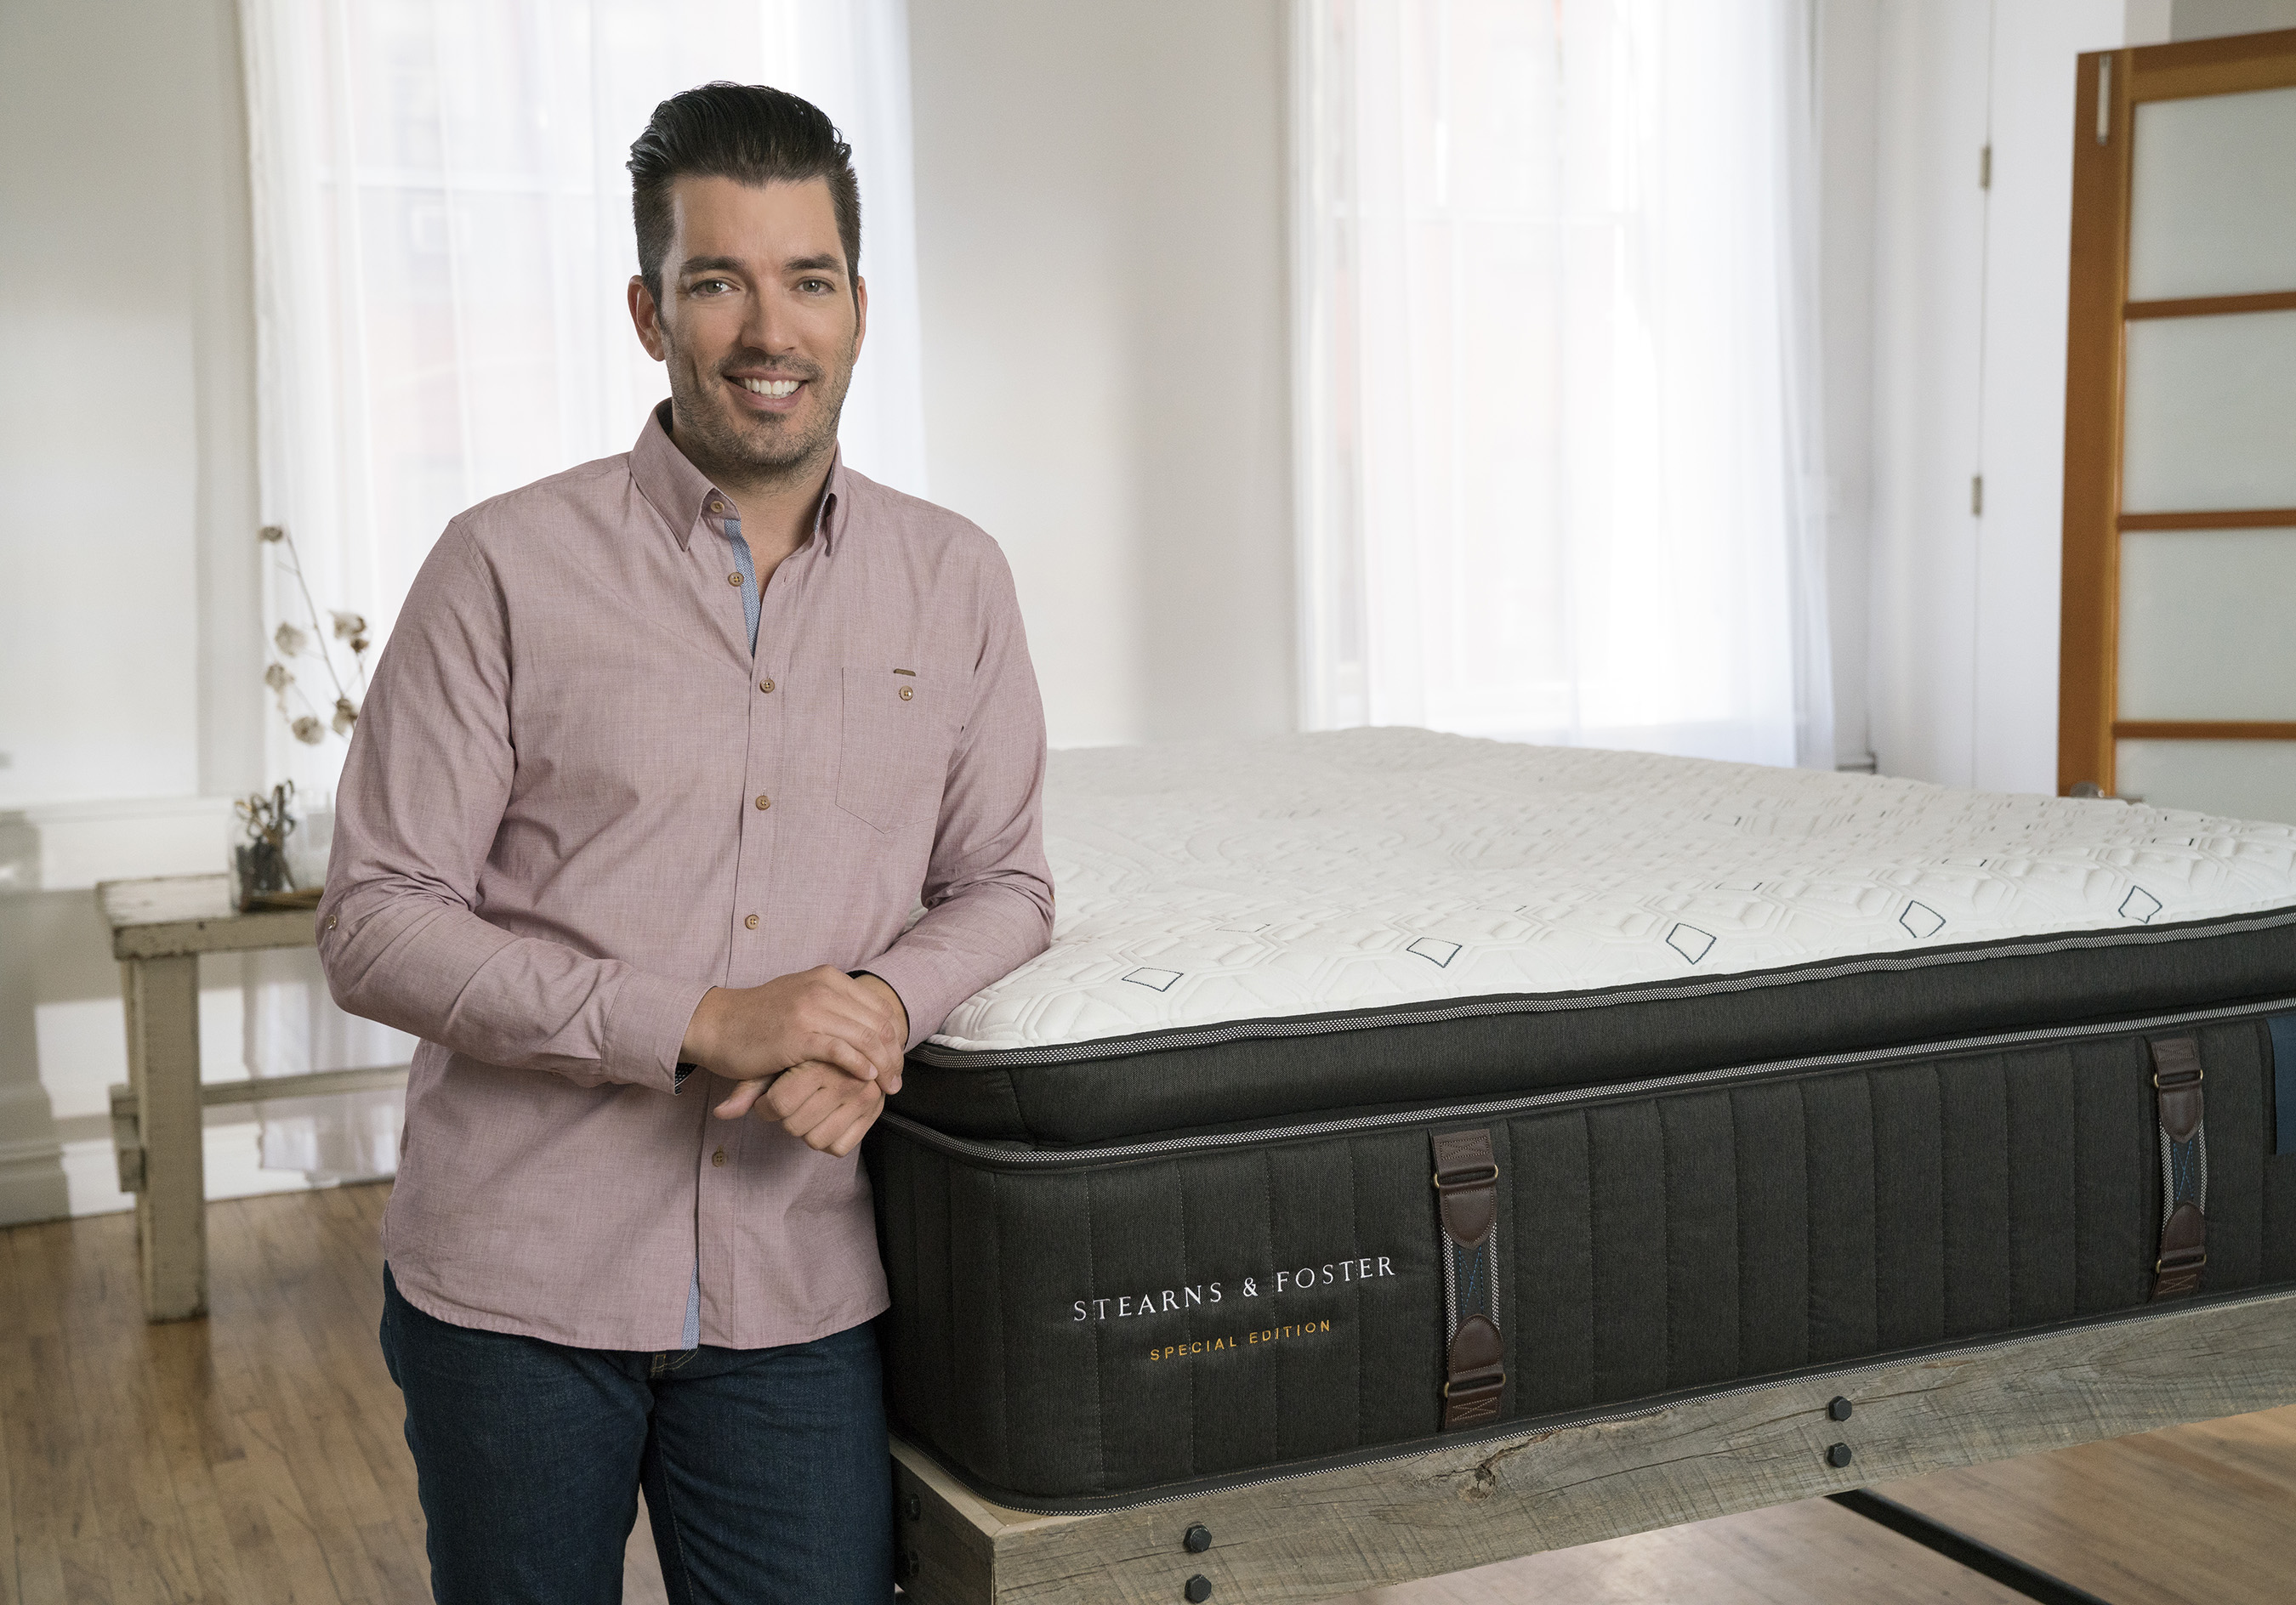 Jonathan Scott designed his own Special Edition mattress with help from Stearns & Foster® and master craftsman Joe Kavanaugh. Fans can enter to win Scott's Special Edition mattress beginning May 31